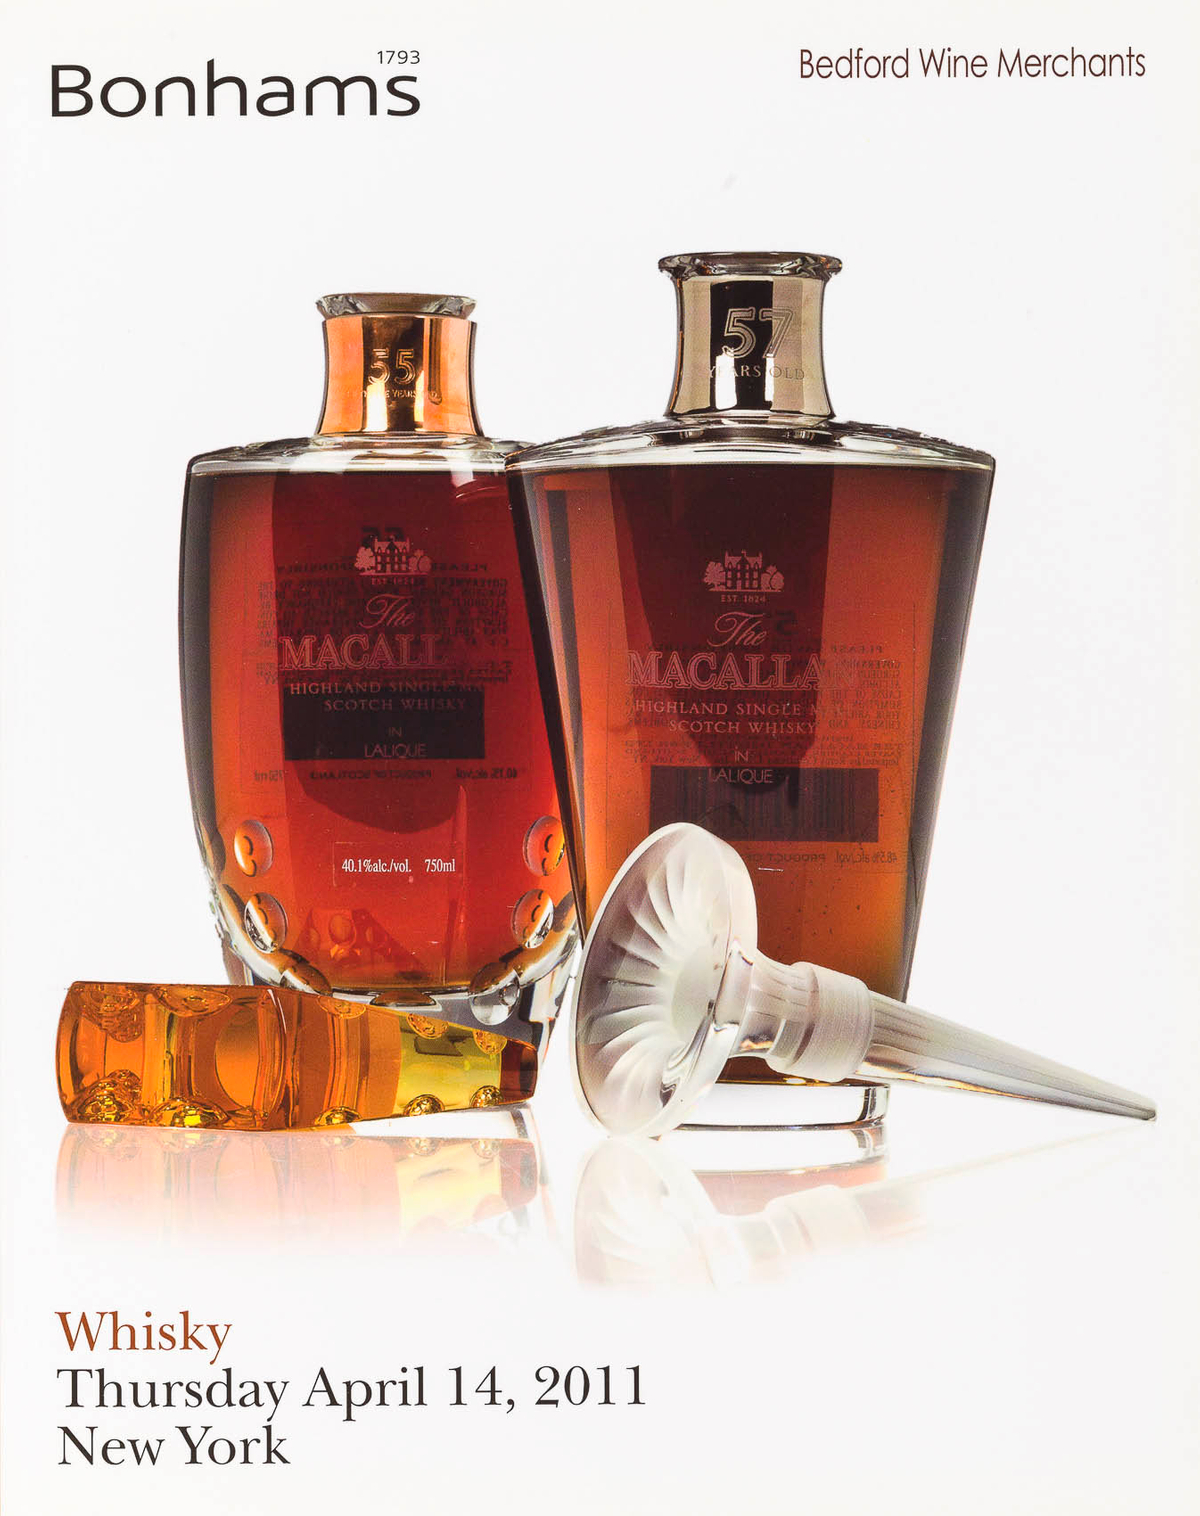 18-2011-4-Bonhams-Whisky.jpg